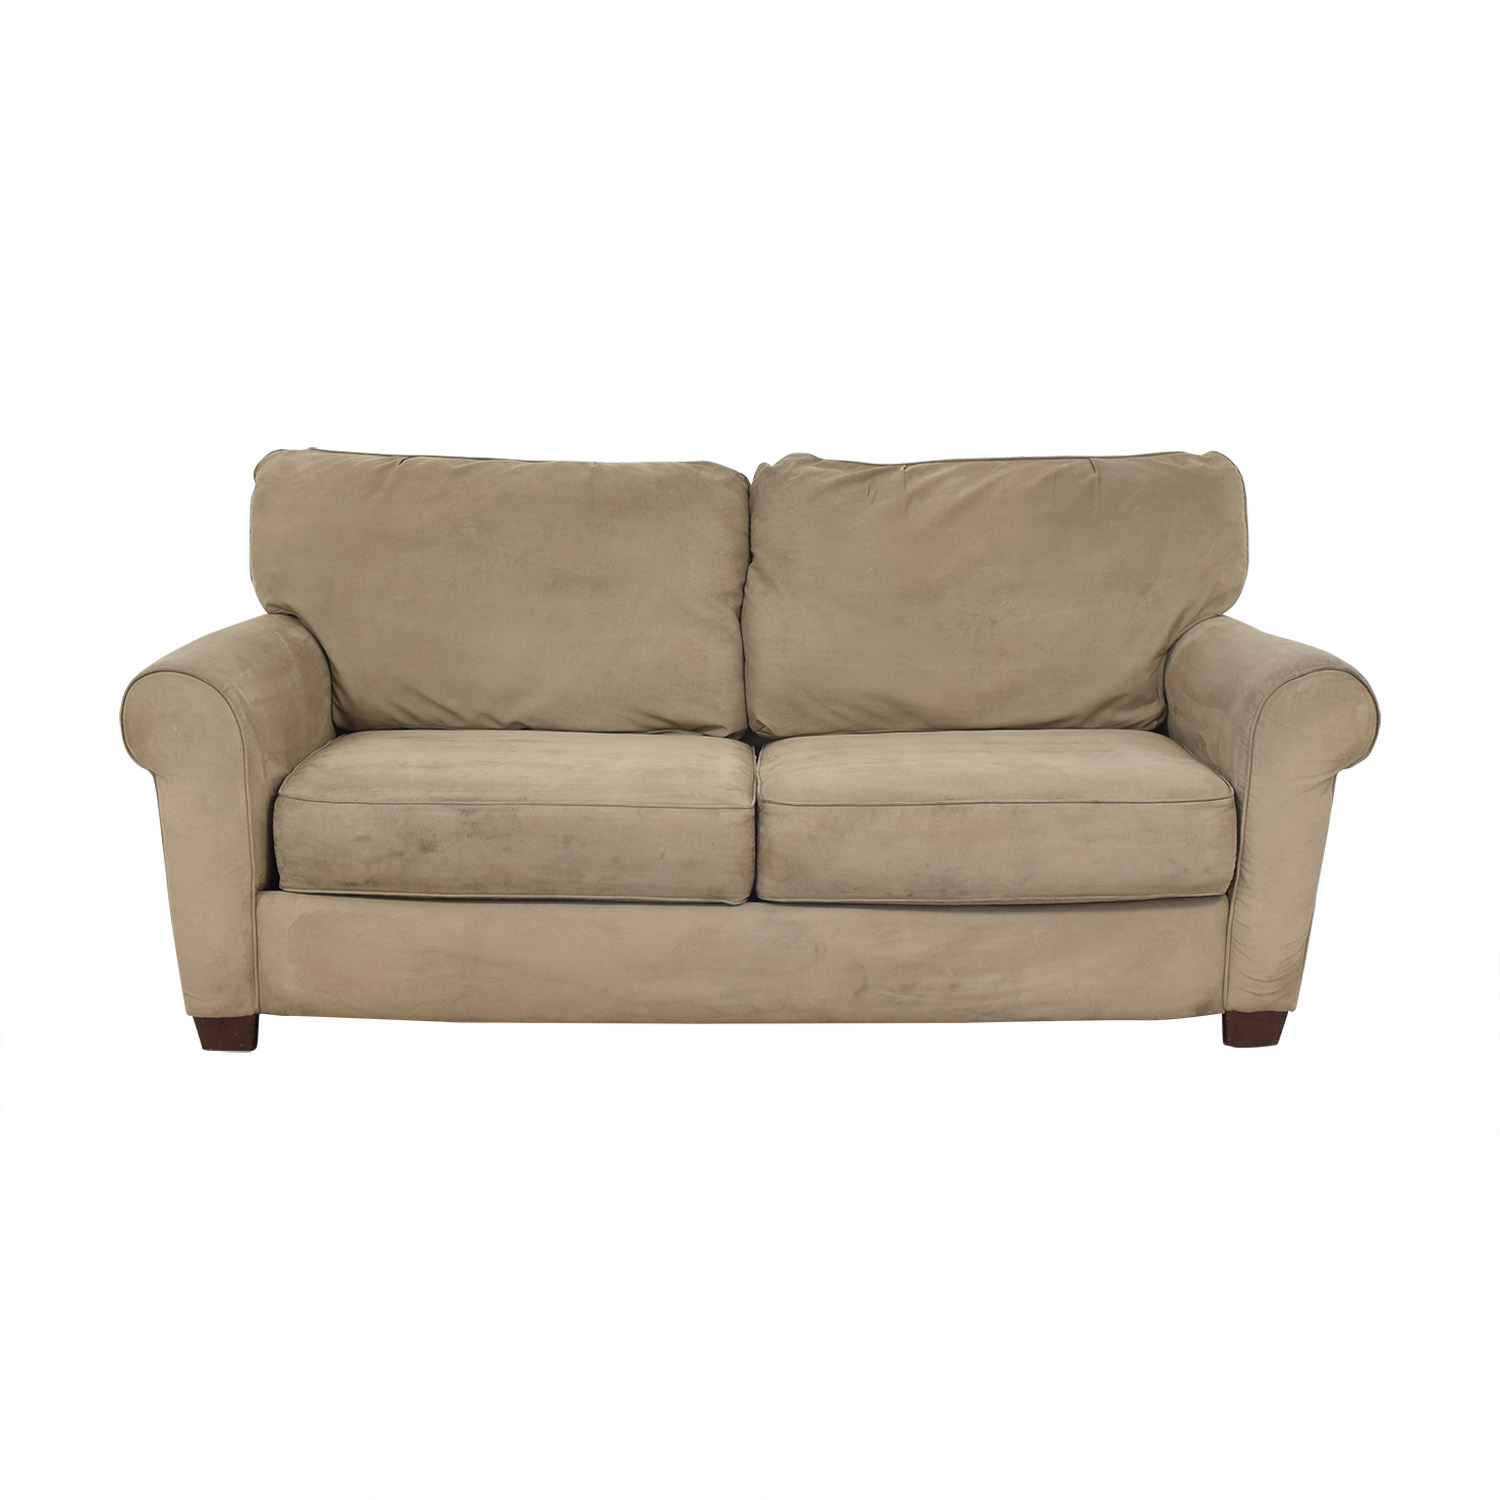 Lane Furniture Lane Furniture Two Cushion Sofa Classic Sofas